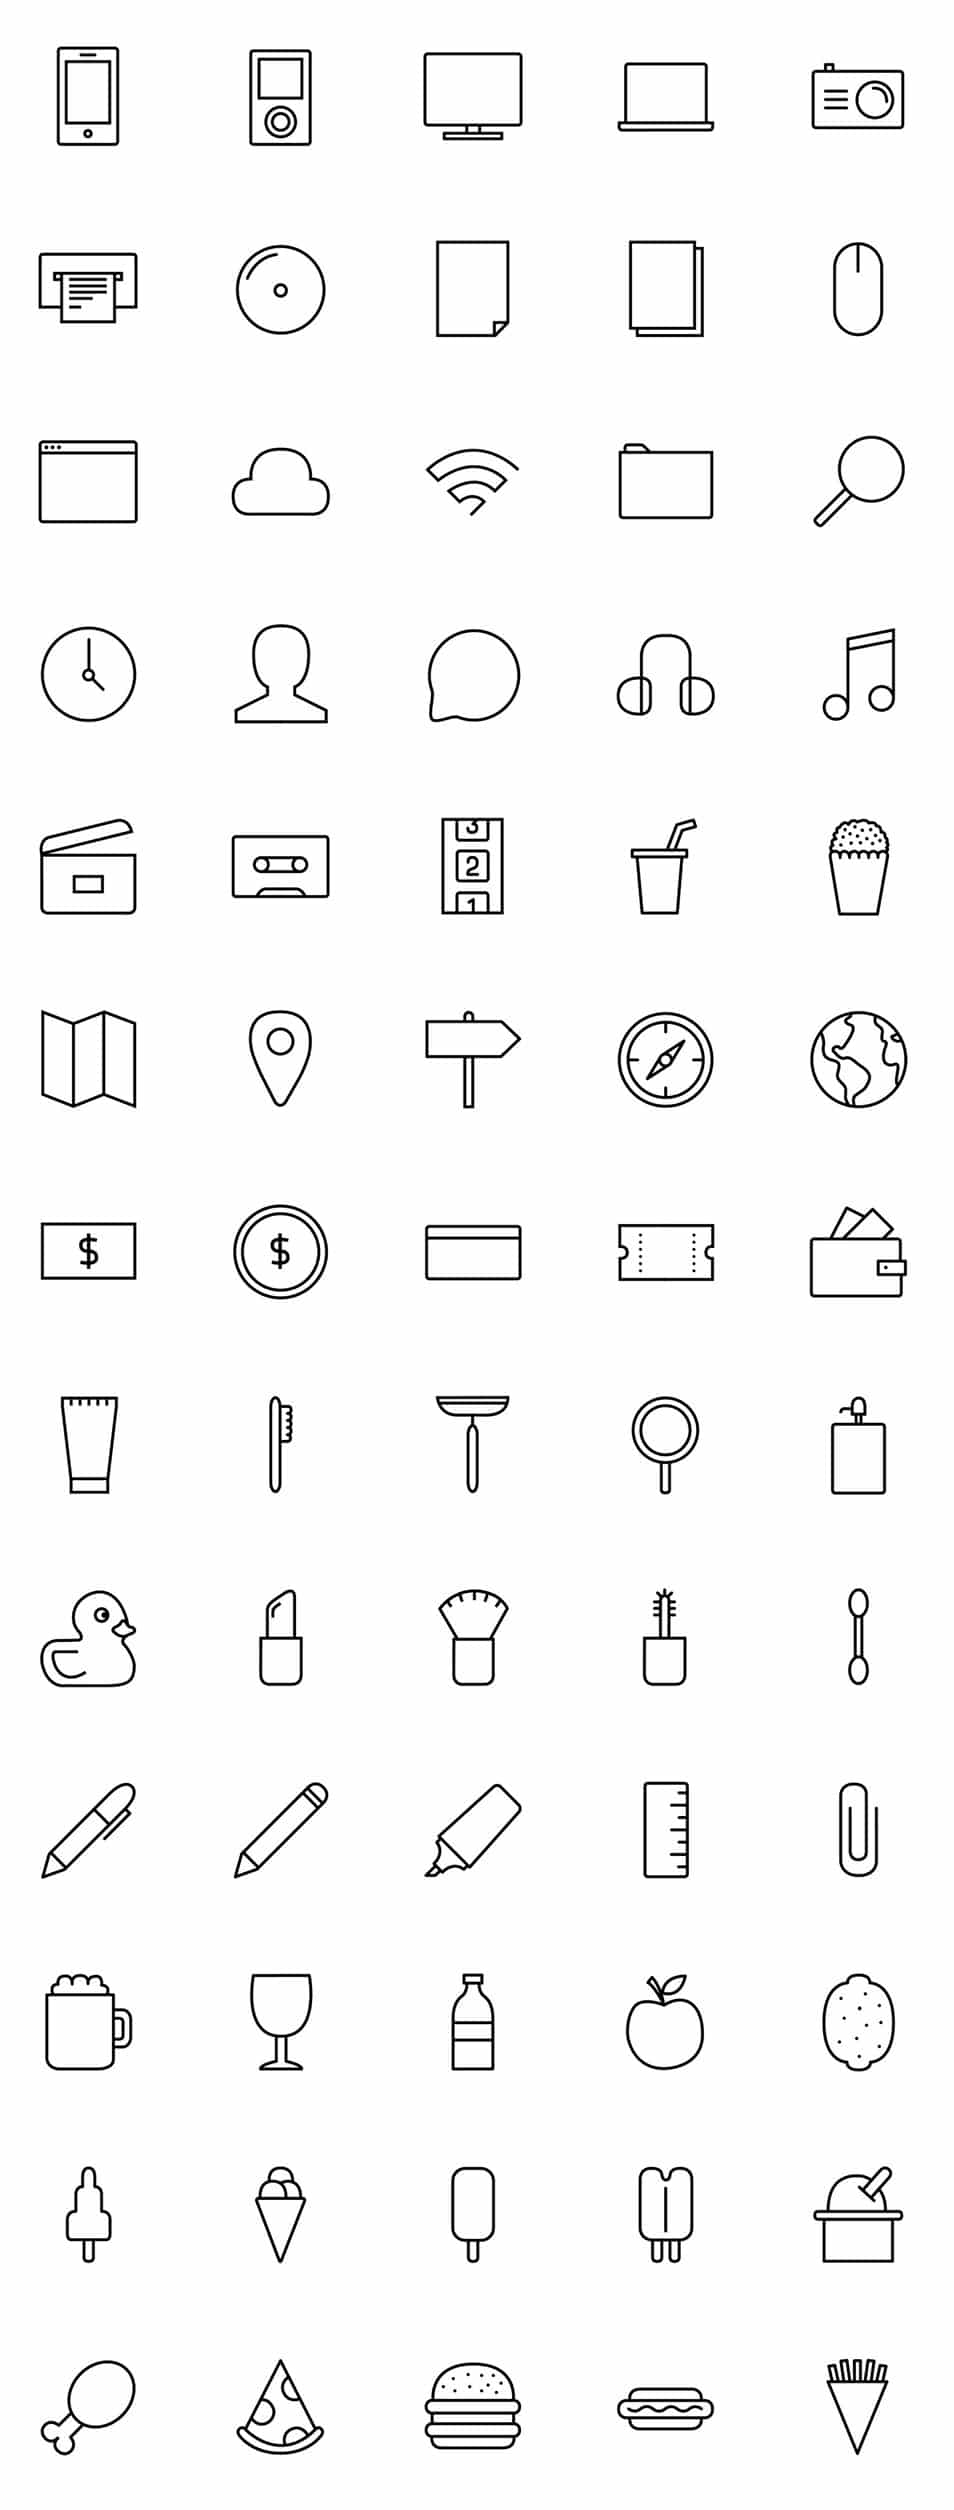 Stripes & Co – A Line-Styled Icon Set (65 Icons)